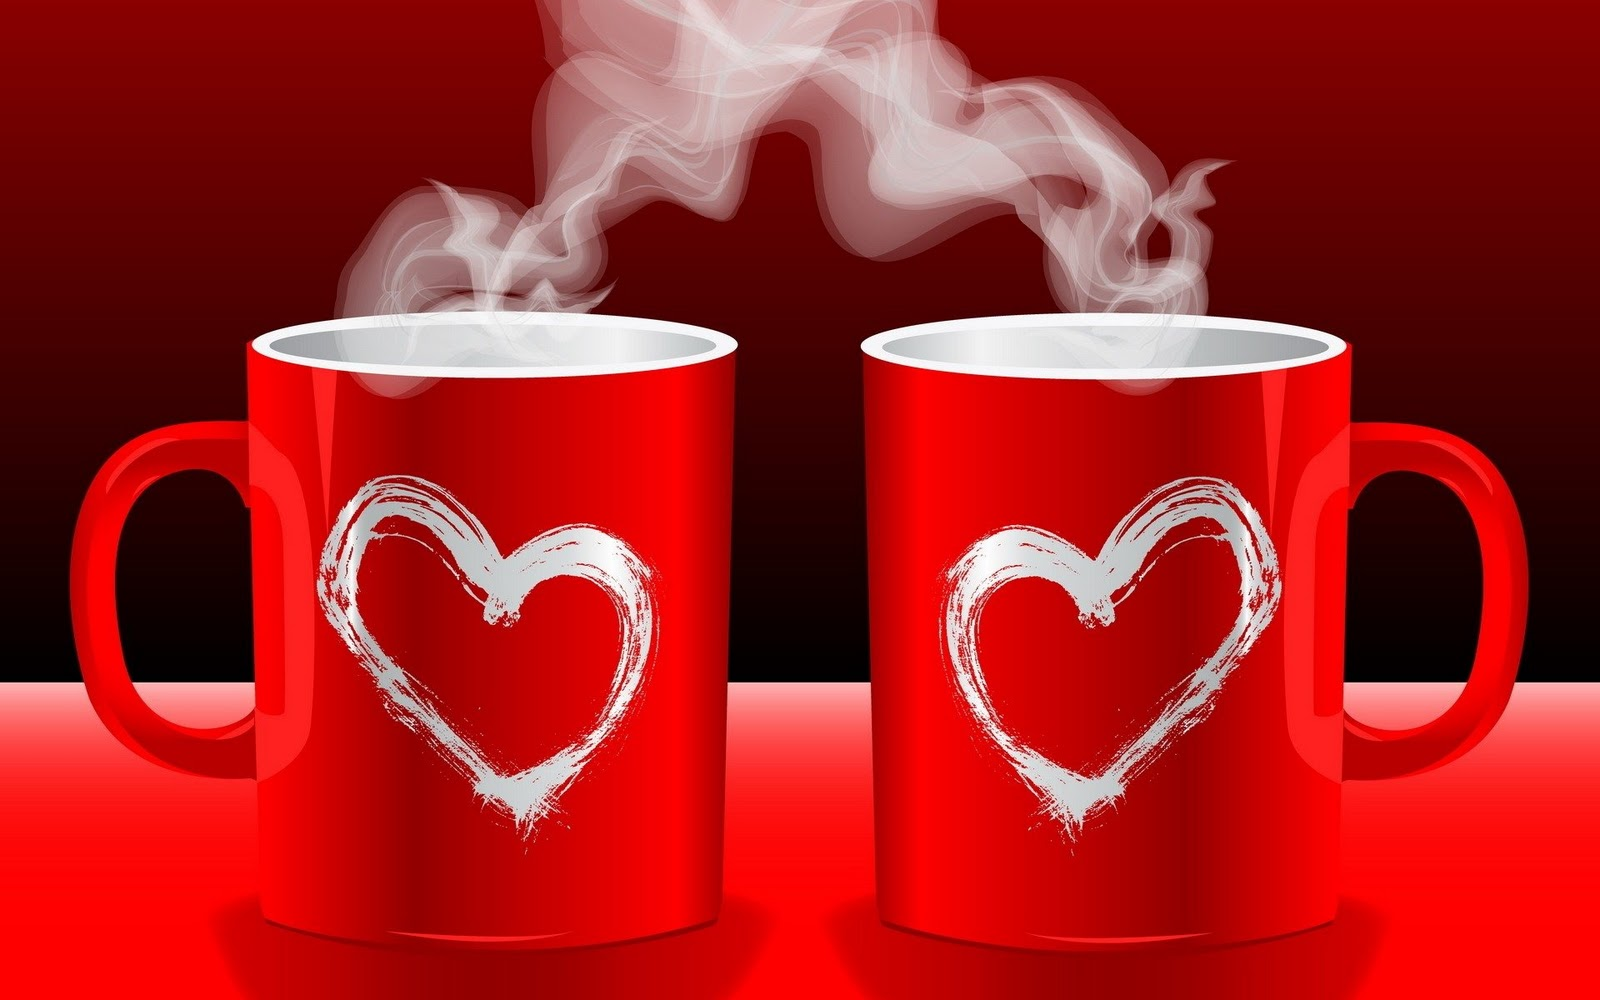 http://2.bp.blogspot.com/-xnniVlQQEDA/TsQM77afuUI/AAAAAAAAA64/U72xTwRkZkU/s1600/Love%20Hearts%20Coffee%20Good%20Morning%20HD%20Wallpaper%20-%20LoveWallpapers4u.Blogspot.Com.jpg